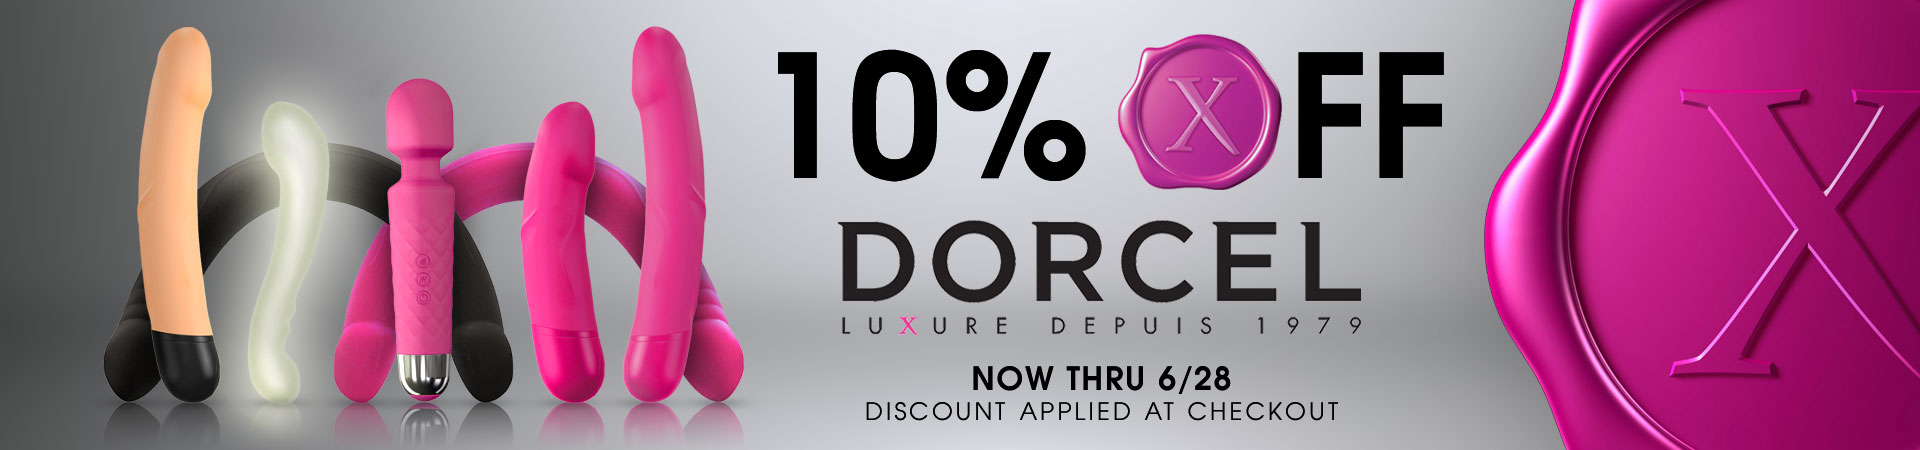 10% Off Dorcel - Now Thru 6/28 - Discount Applied At Checkout